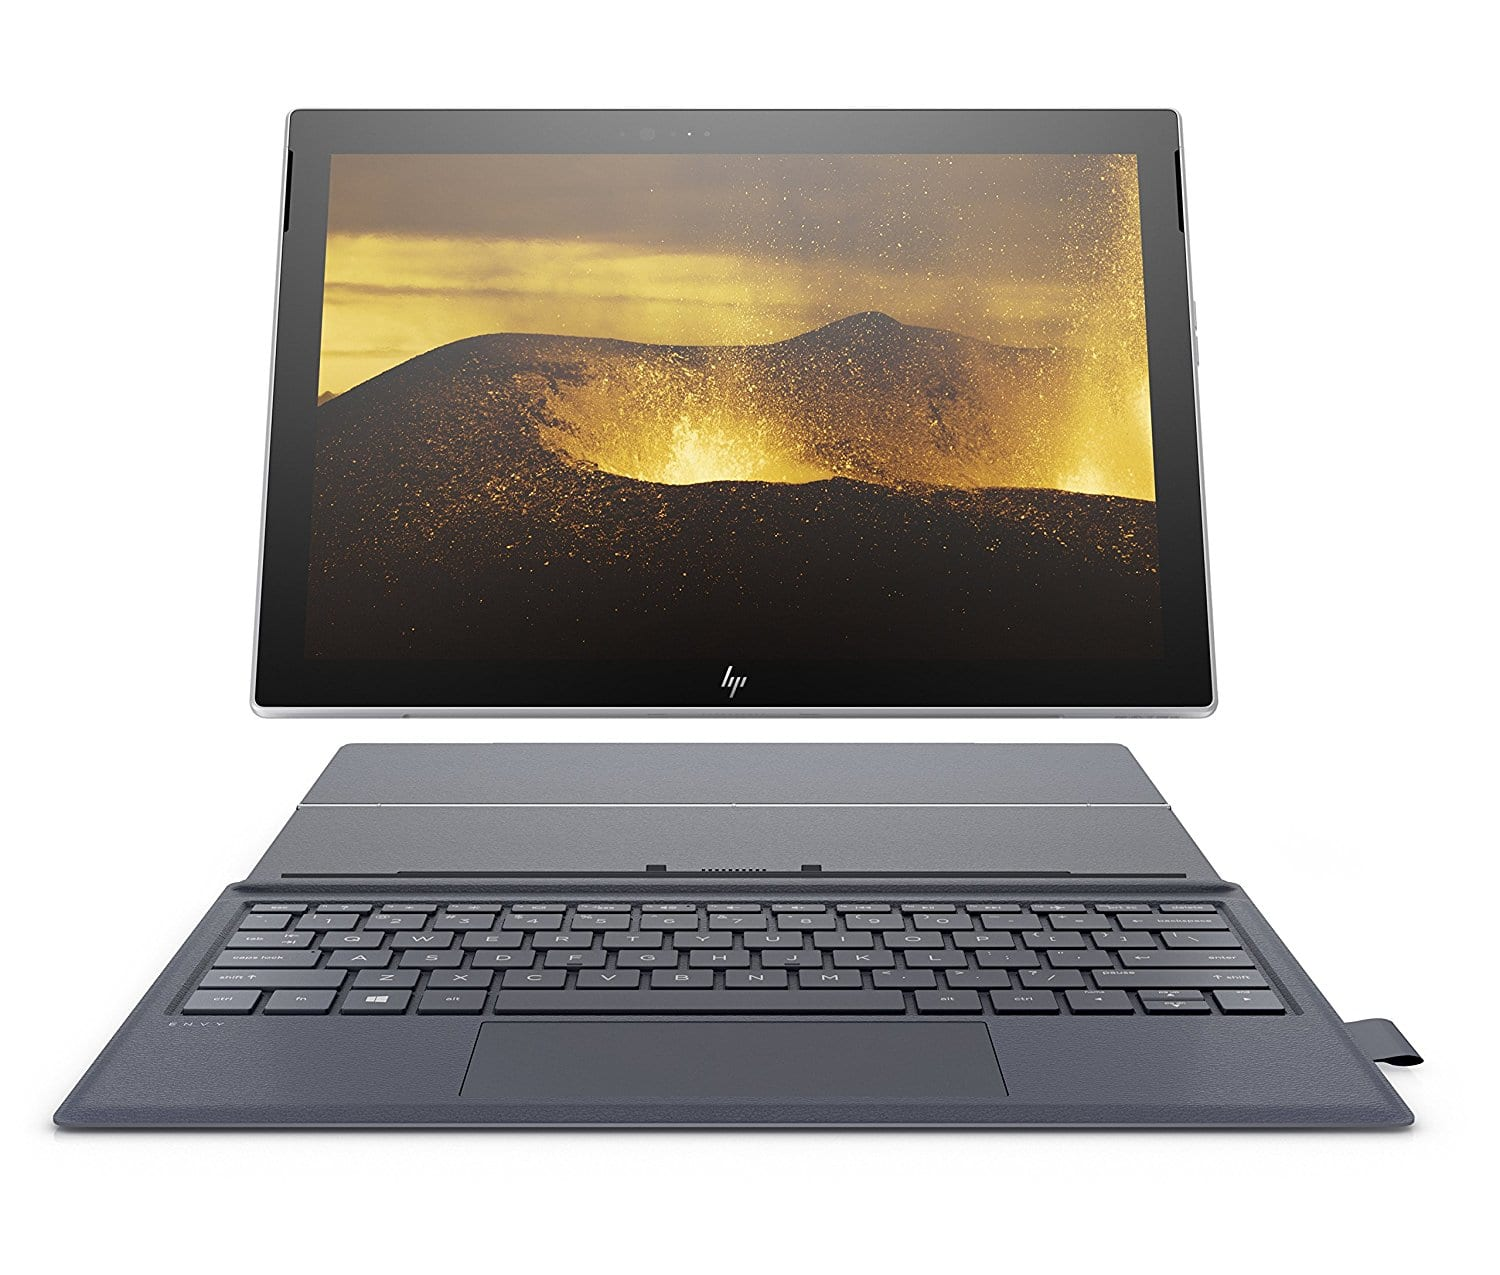 HP ENVY x2 12-inch Detachable Laptop with Stylus Pen and 4G LTE for $521